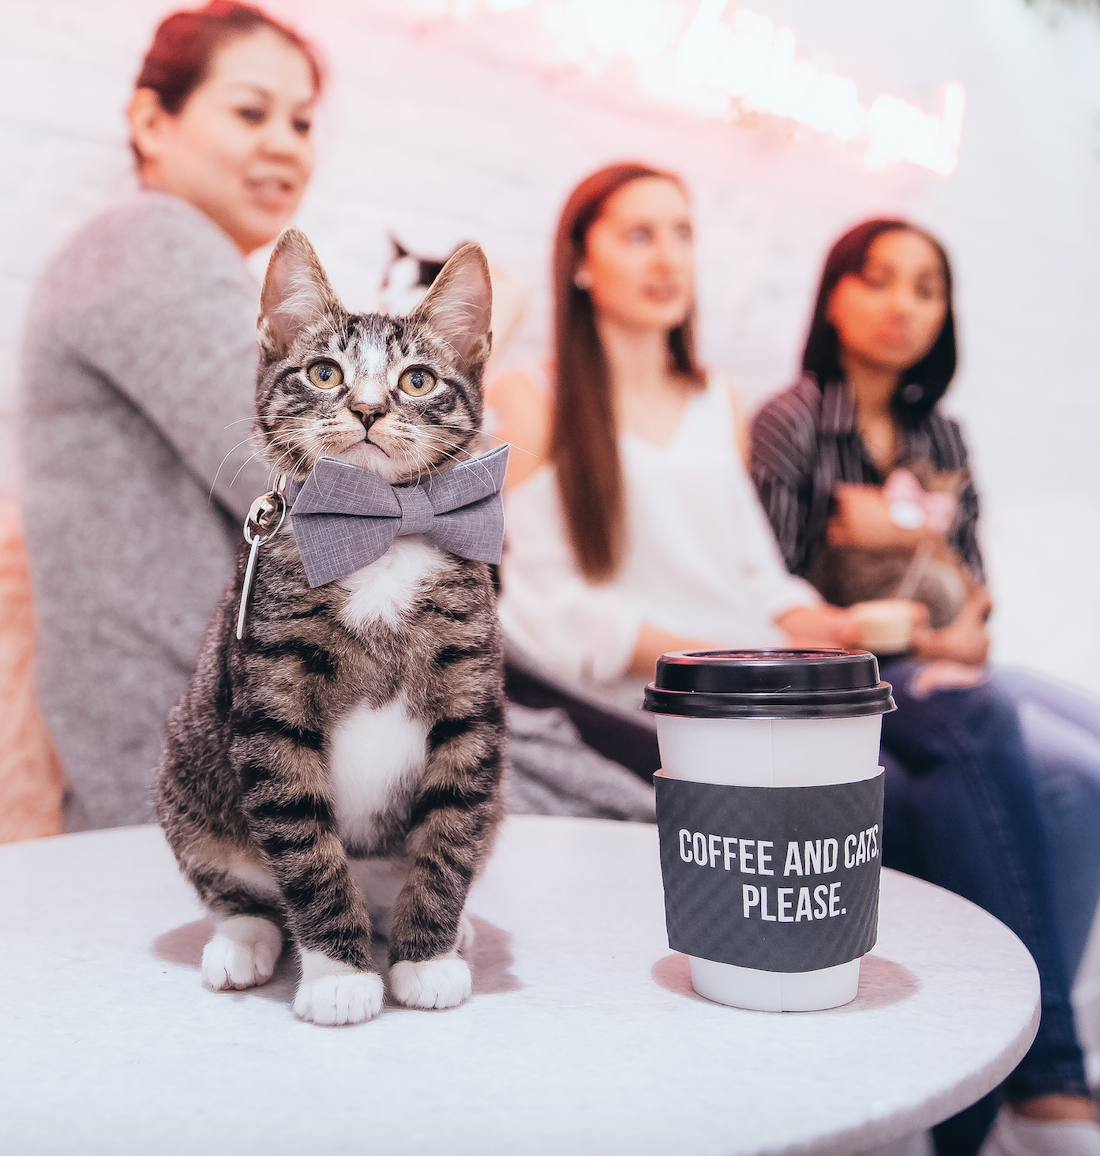 What is The Kitten Lounge? - The Kitten Lounge is a place filled with adorable rescue kittens who are looking for their forever homes. You can play with them, cuddle with them, nap with them, do a photoshoot with them, and if you fall in love, adopt them!